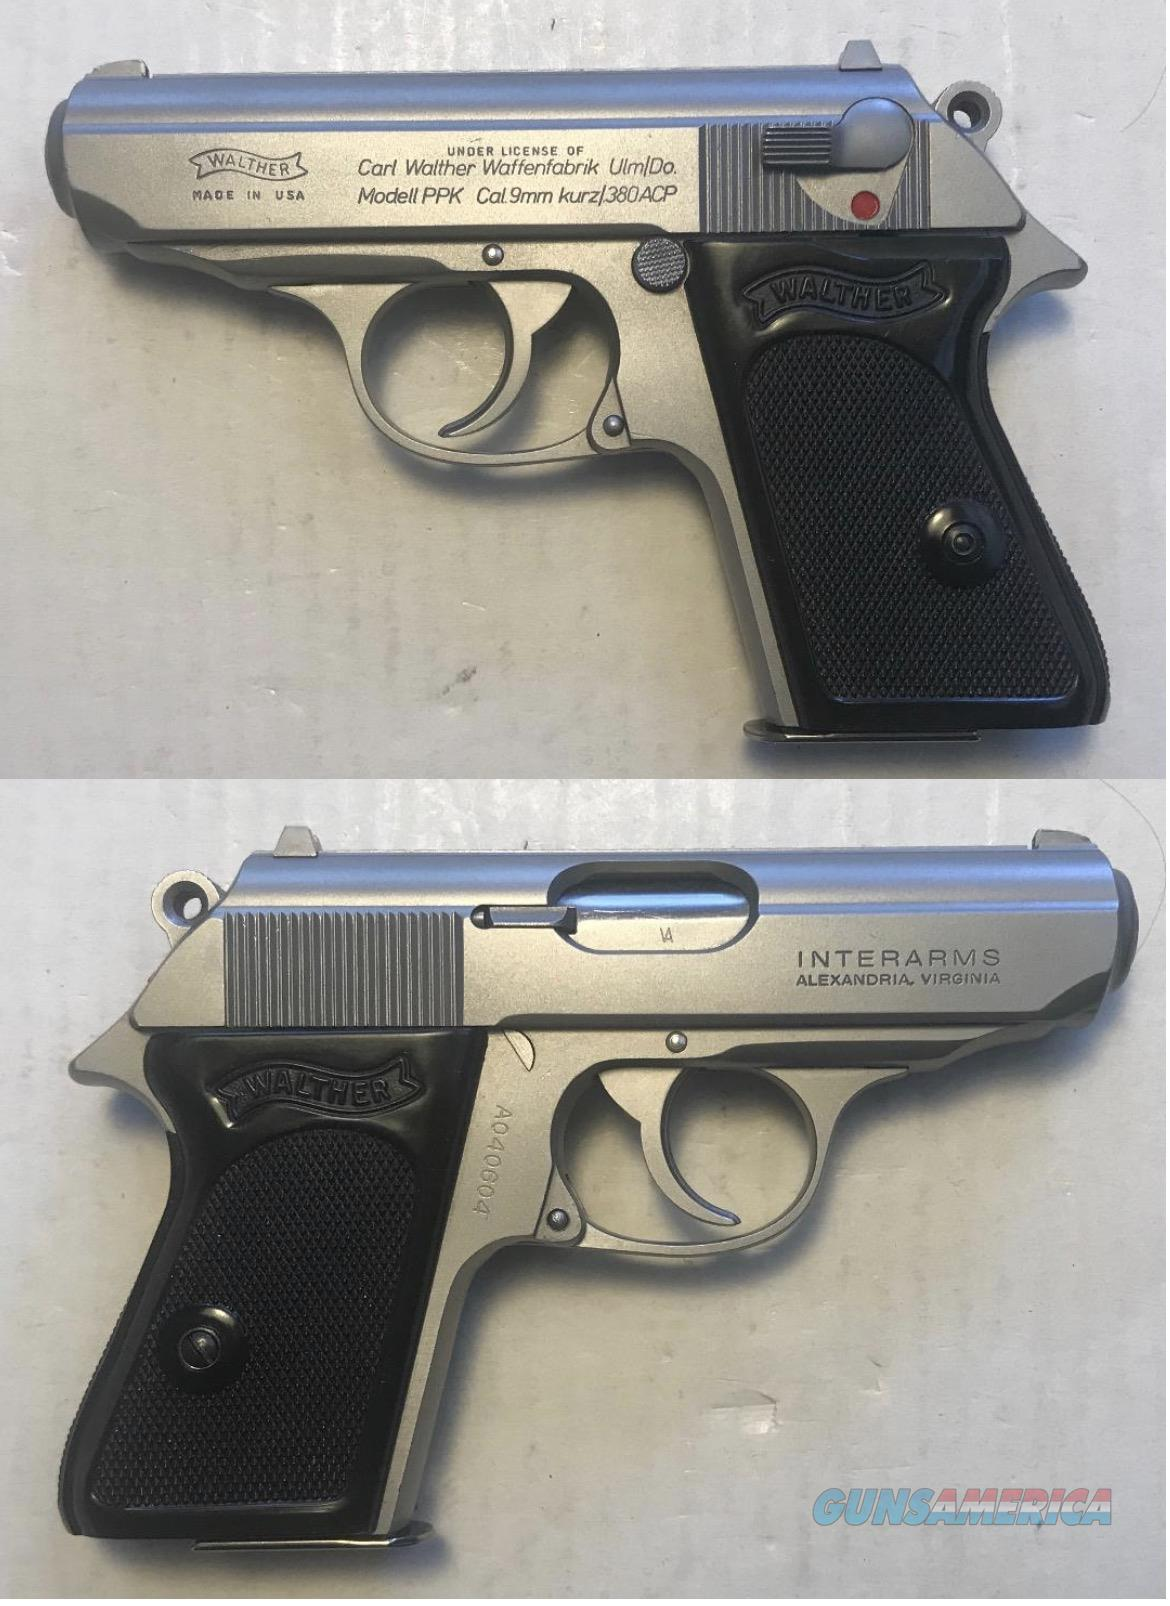 Walther/Interarms Model PPK Stainless  380